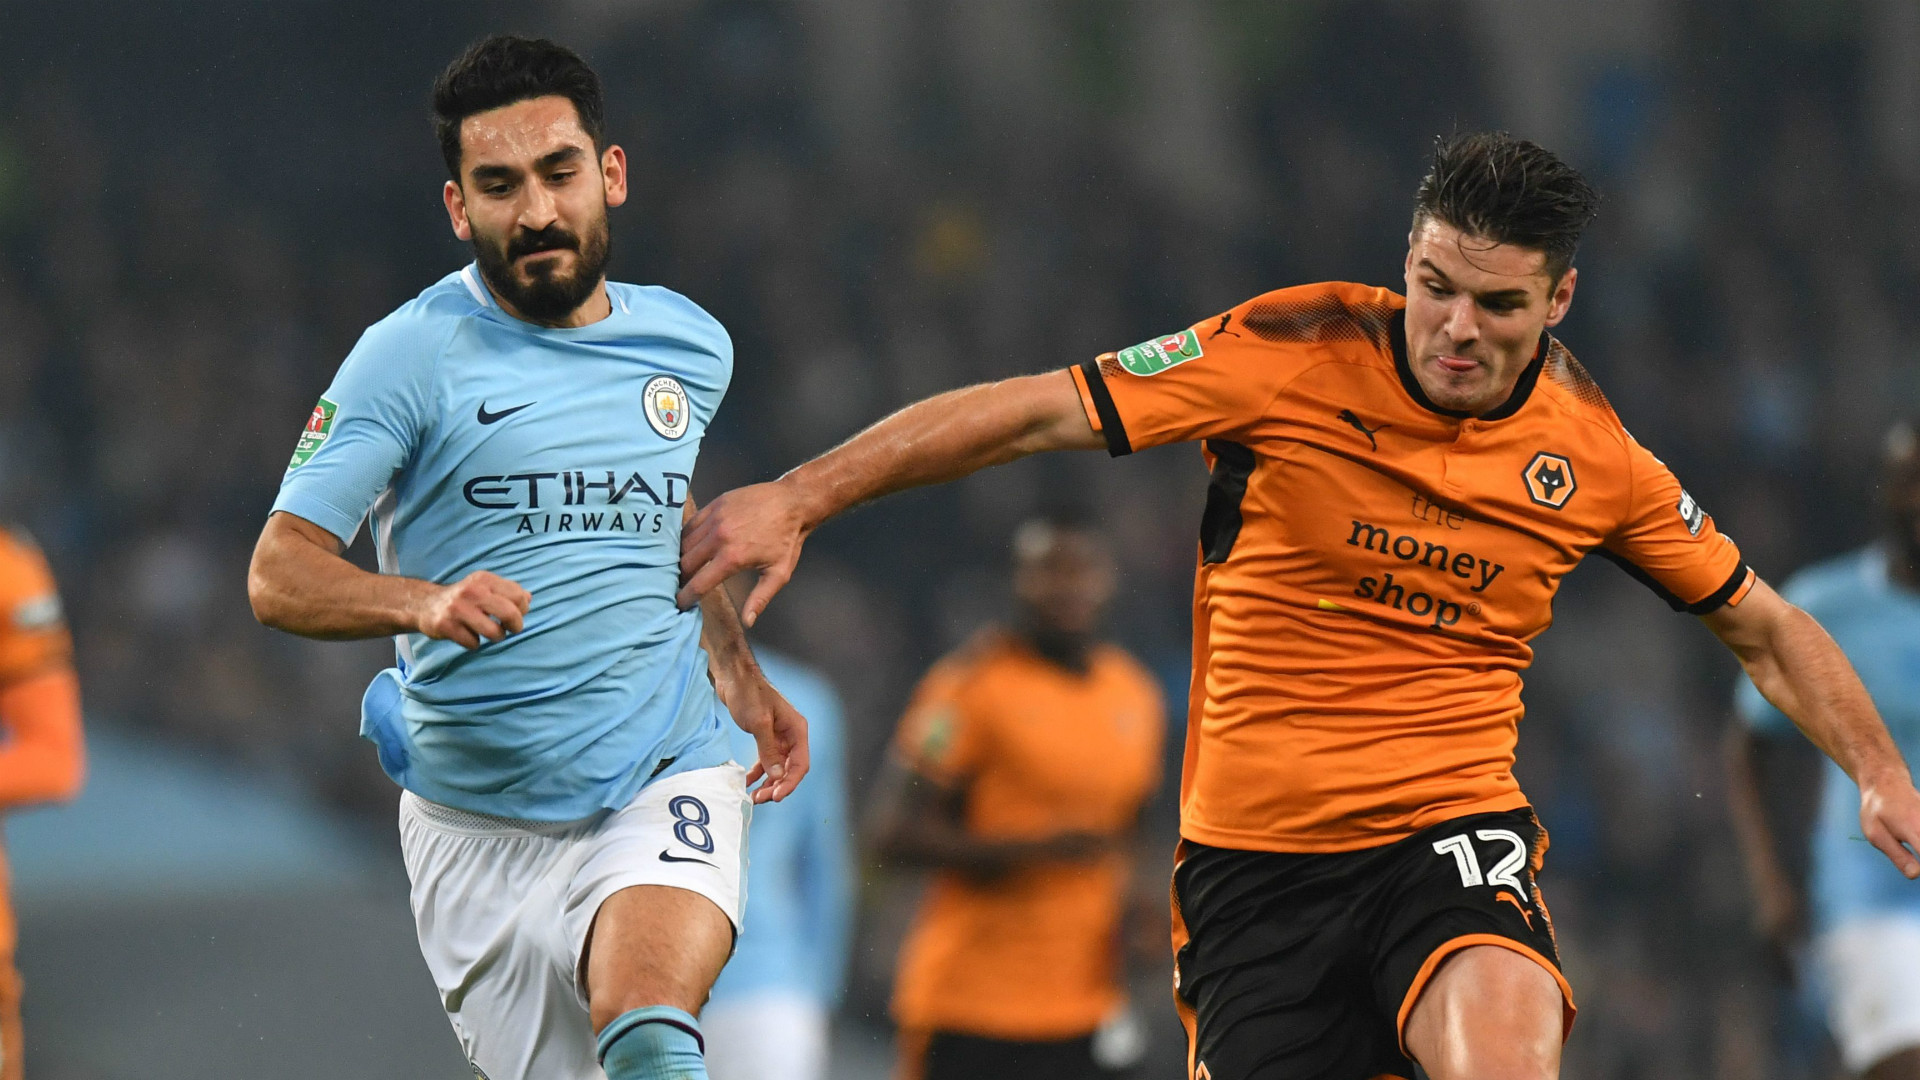 Image result for gundogan man city vs wolves 2017/18